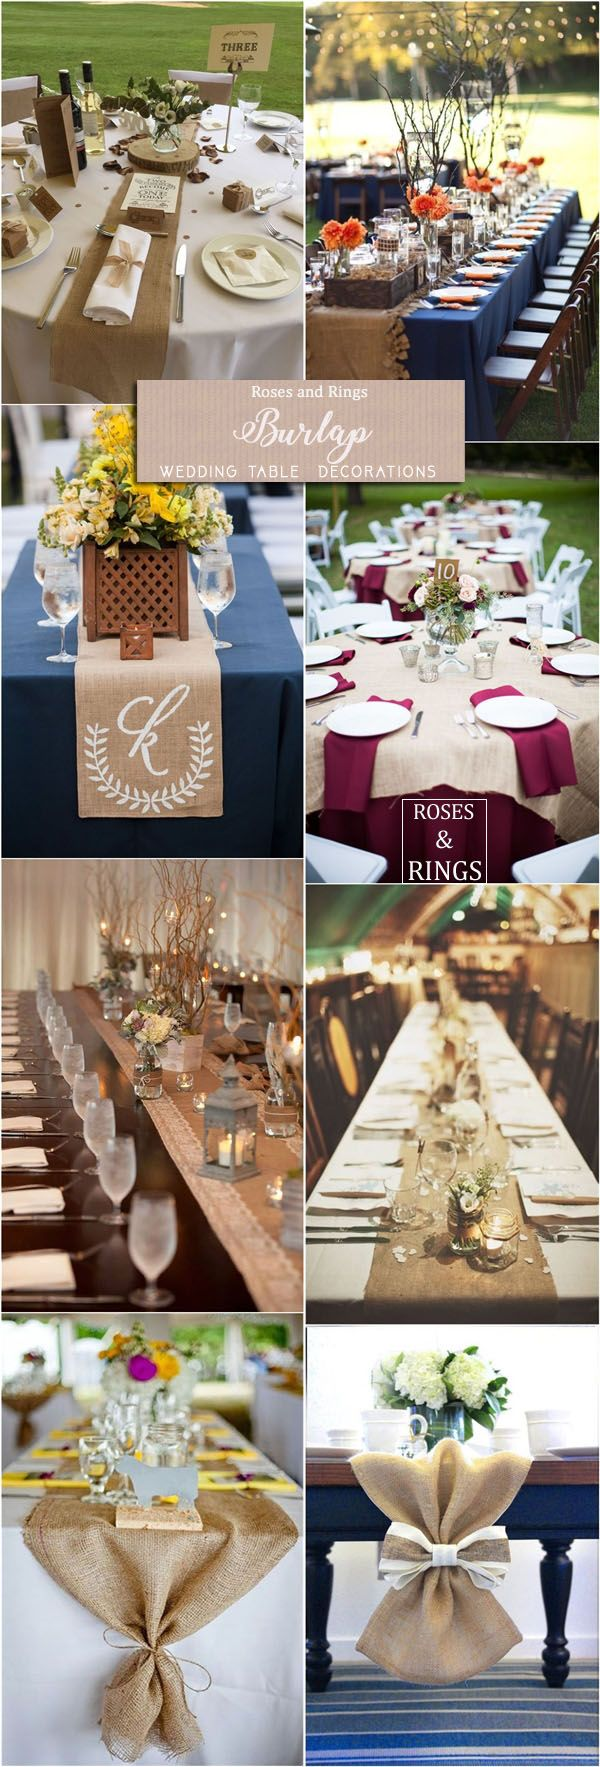 36 Amazing Rustic Country Burlap Wedding Decor